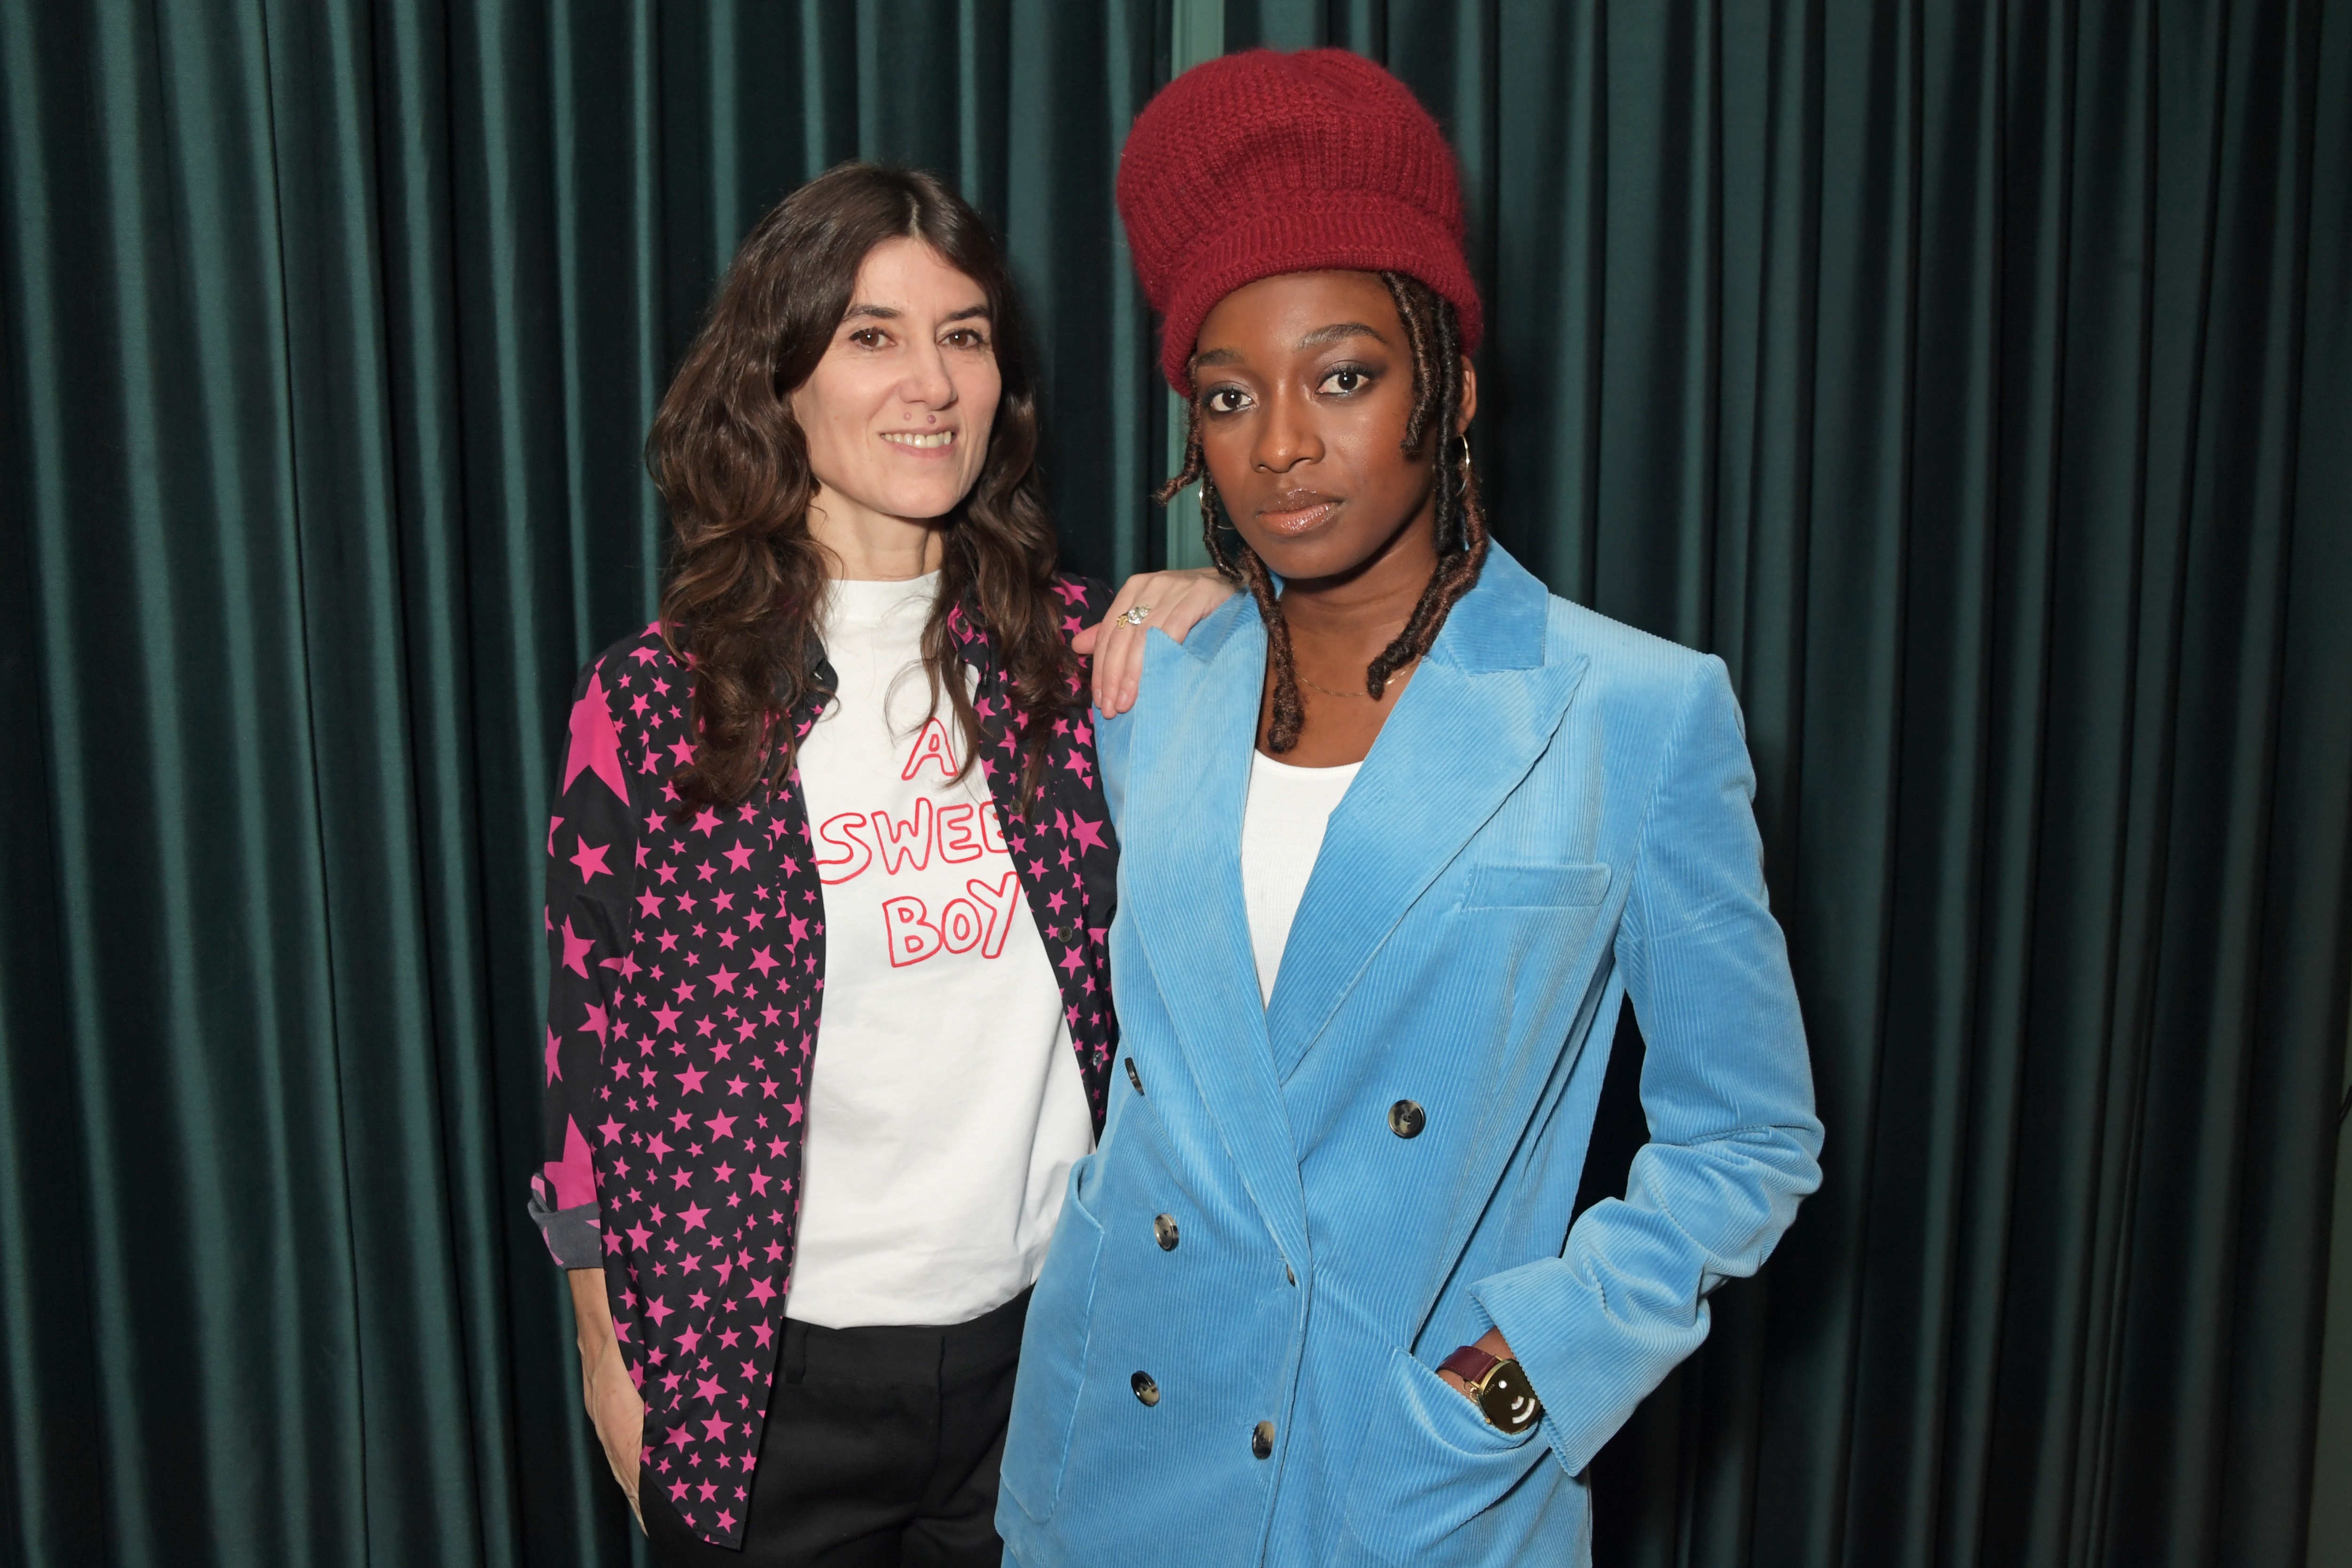 Bella Freud and Little Simz attend the MatchesFashion X Bella Freud Musical Matches event